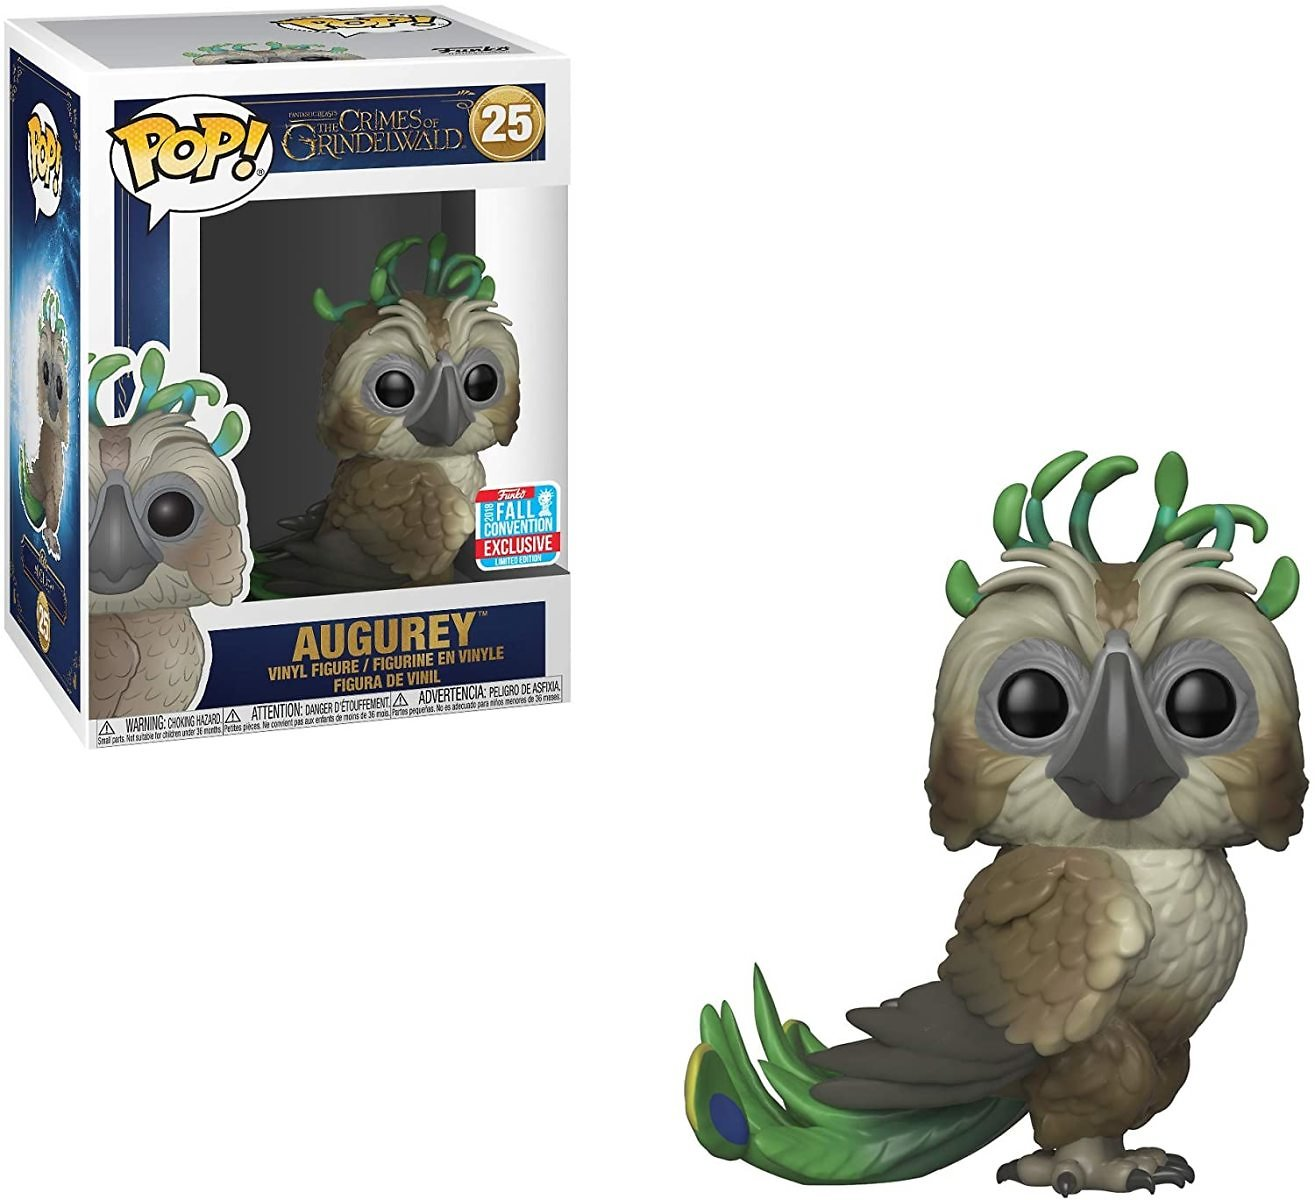 Pop! Movies: Fantastic Beasts 2 - Augurey, Fall Convention Exclusive